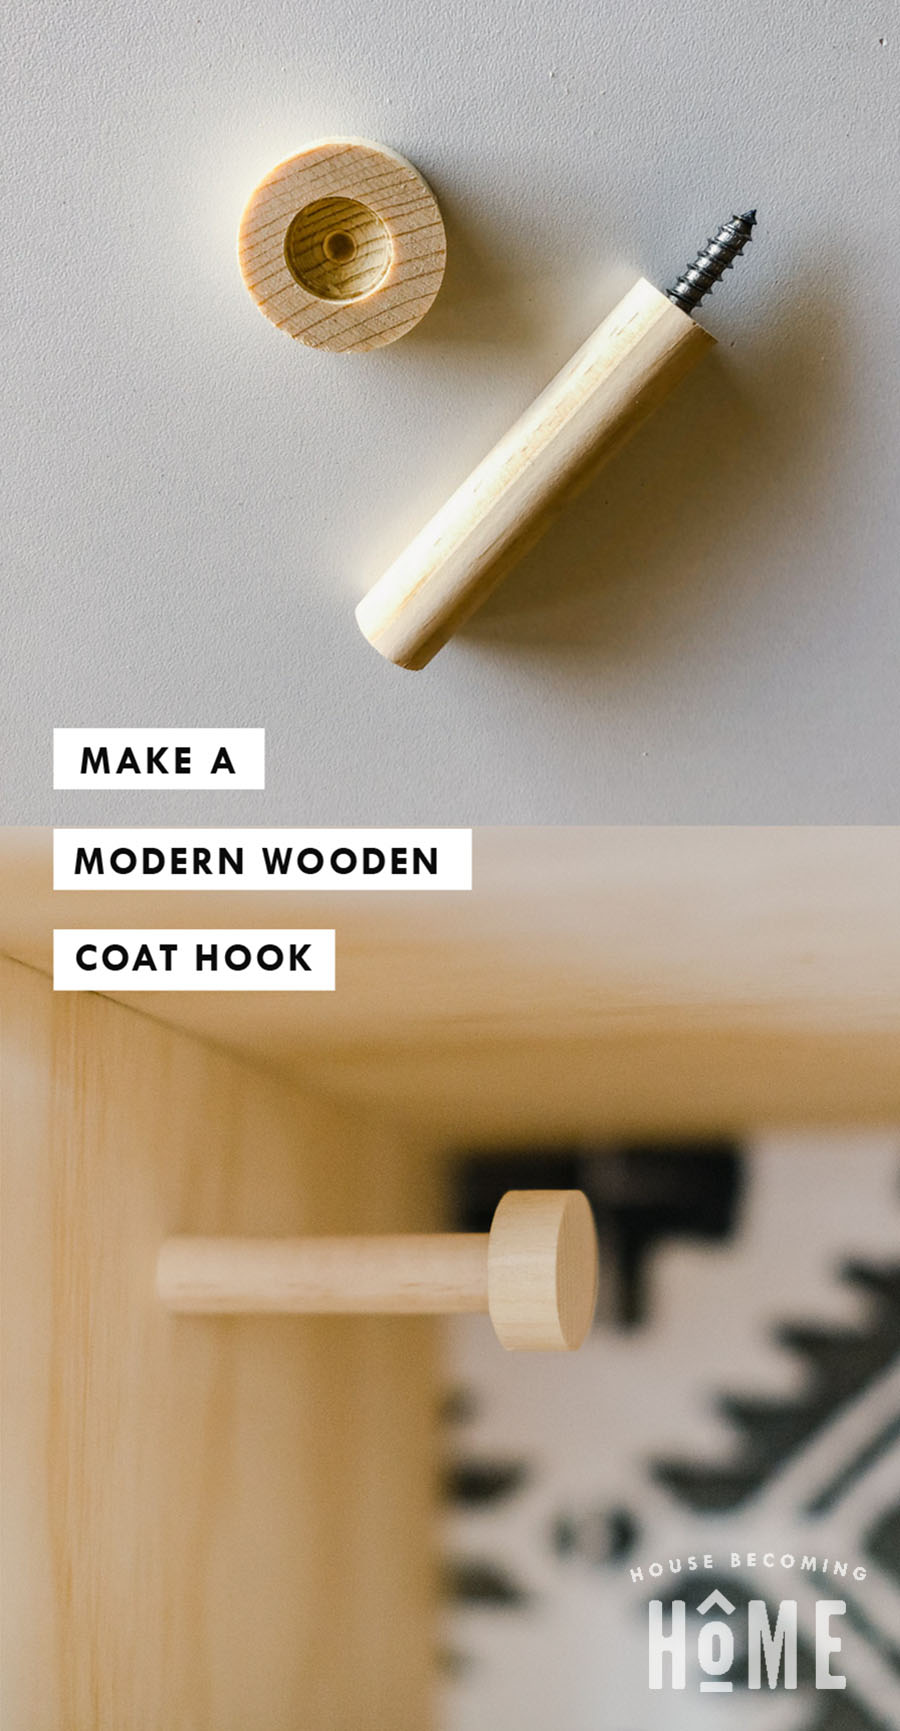 Make a Modern Wooden Coat Hook